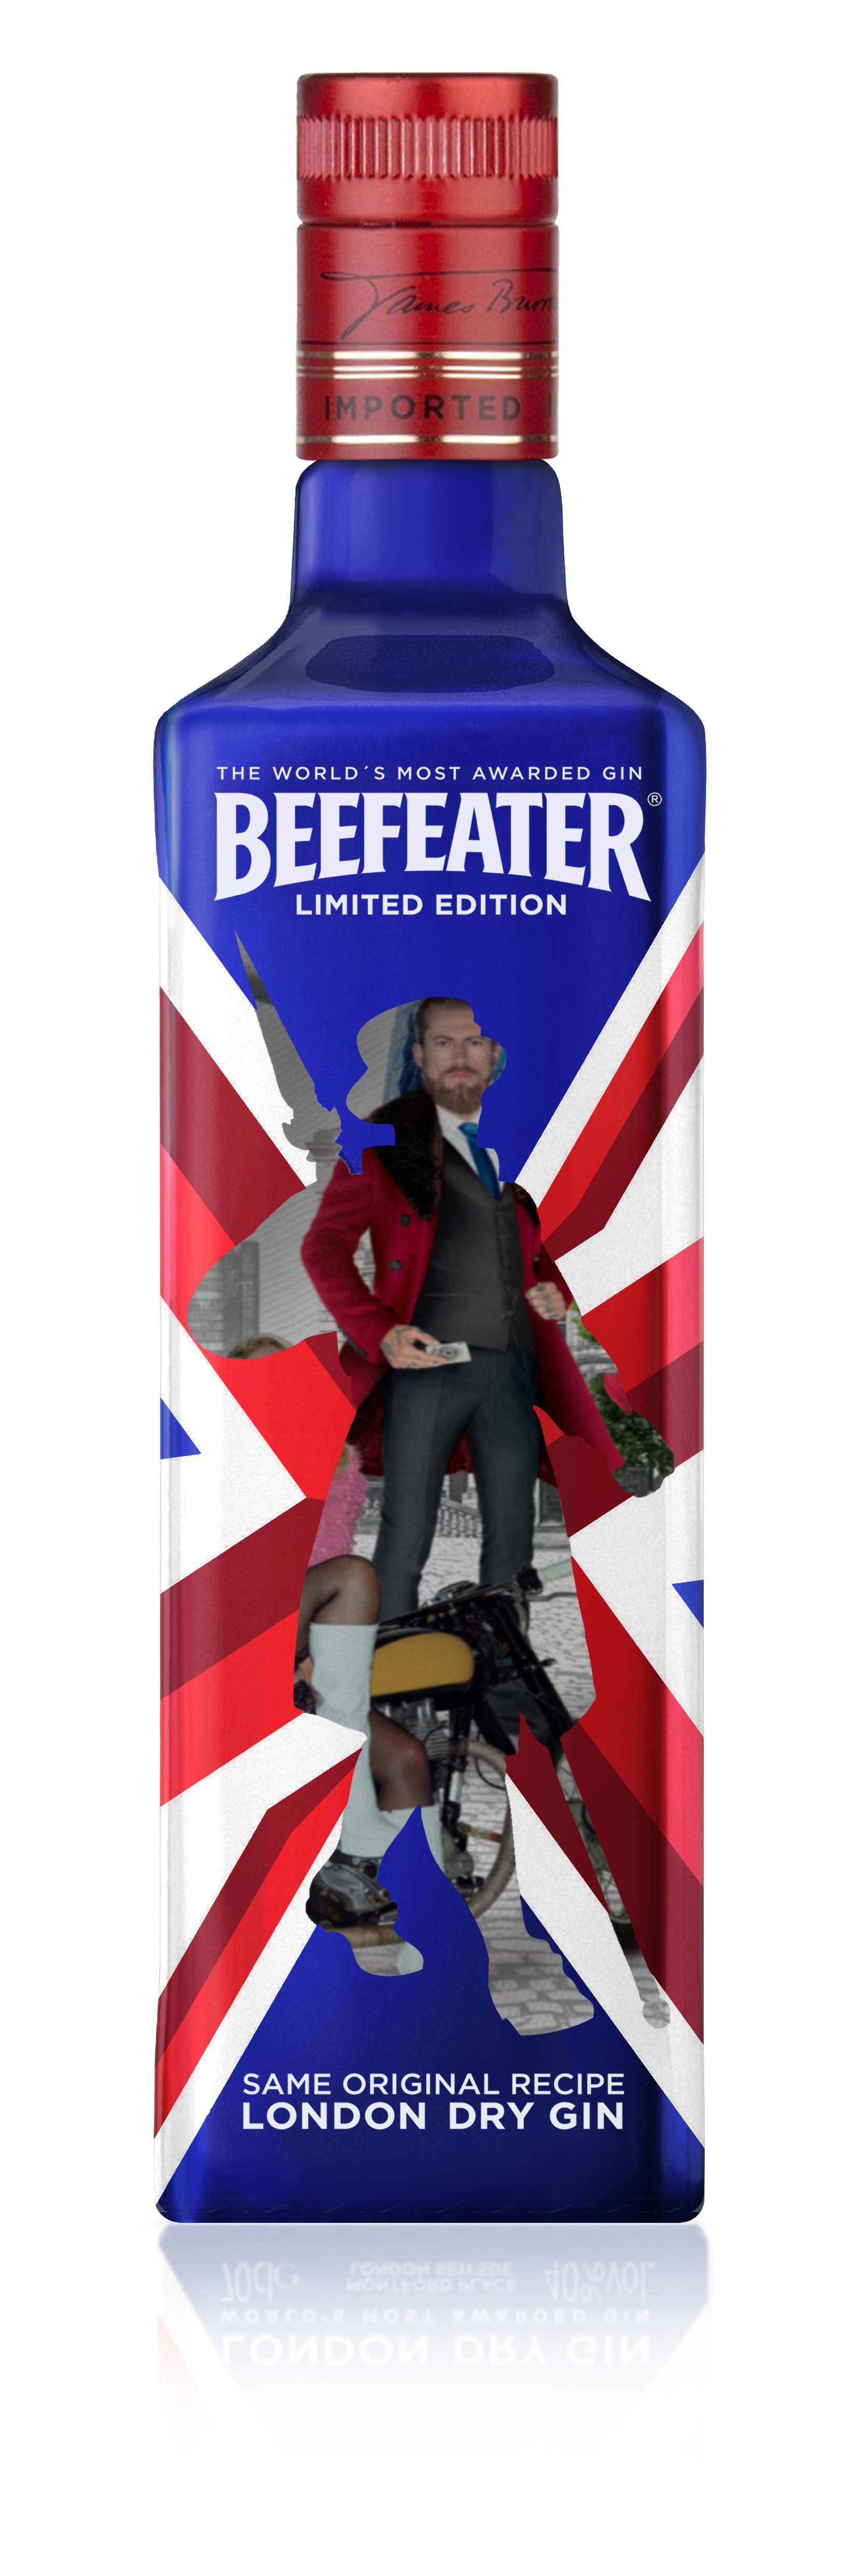 Beefeater London Dry Gin limited edition Spirit of London